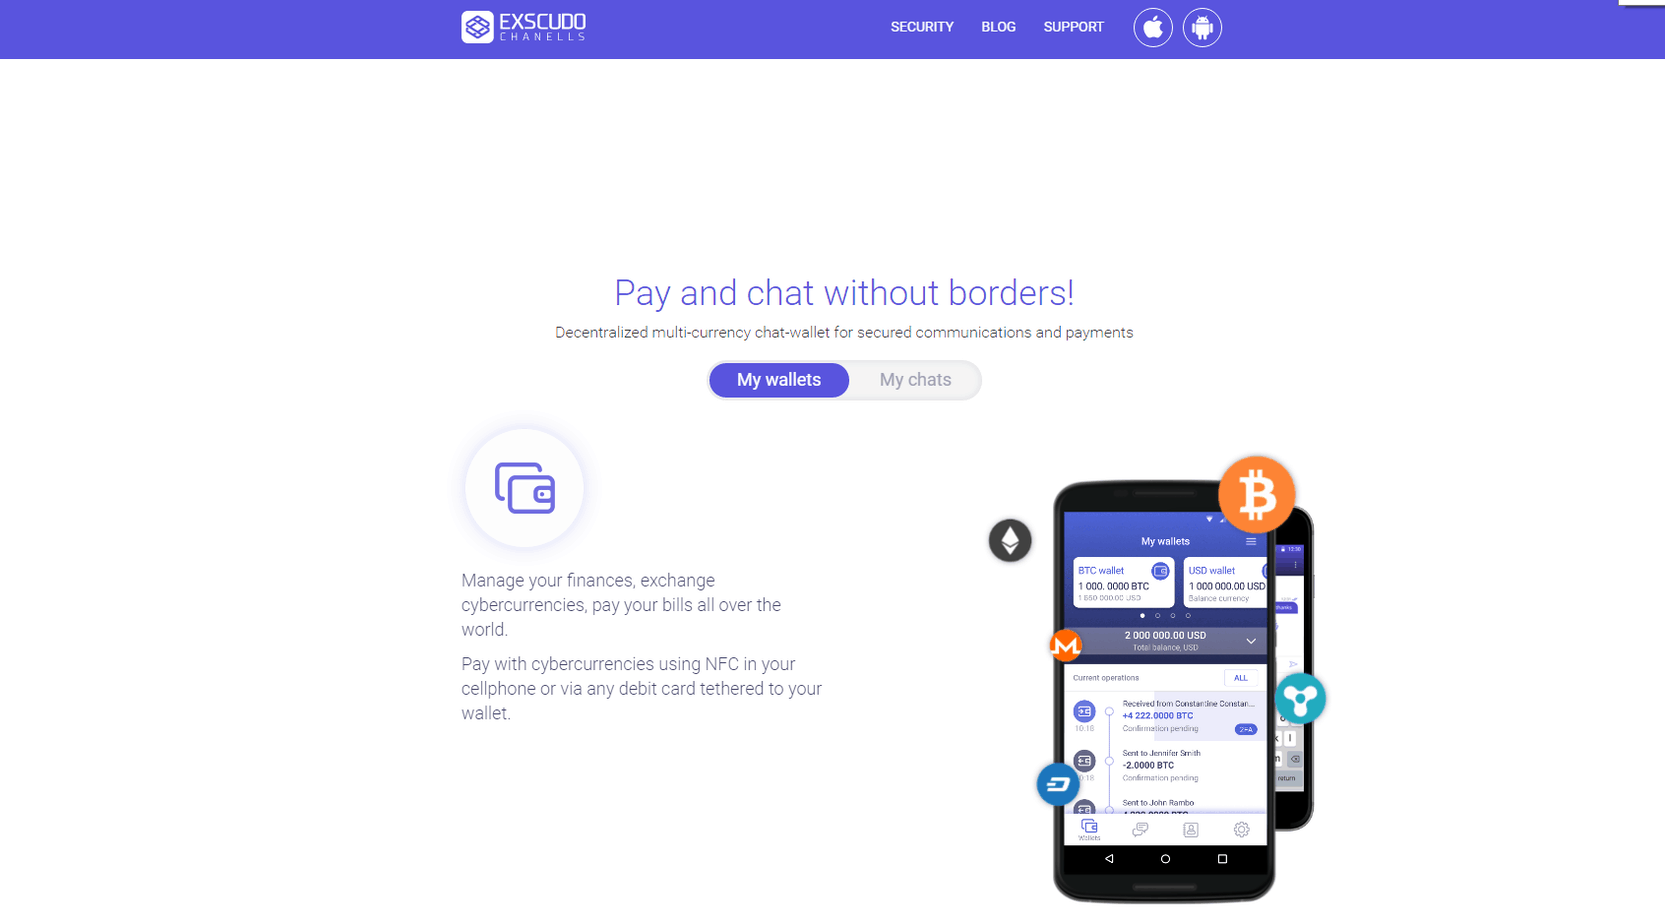 The Exscudo Channels App Is A New Mobile Wallet And Secure